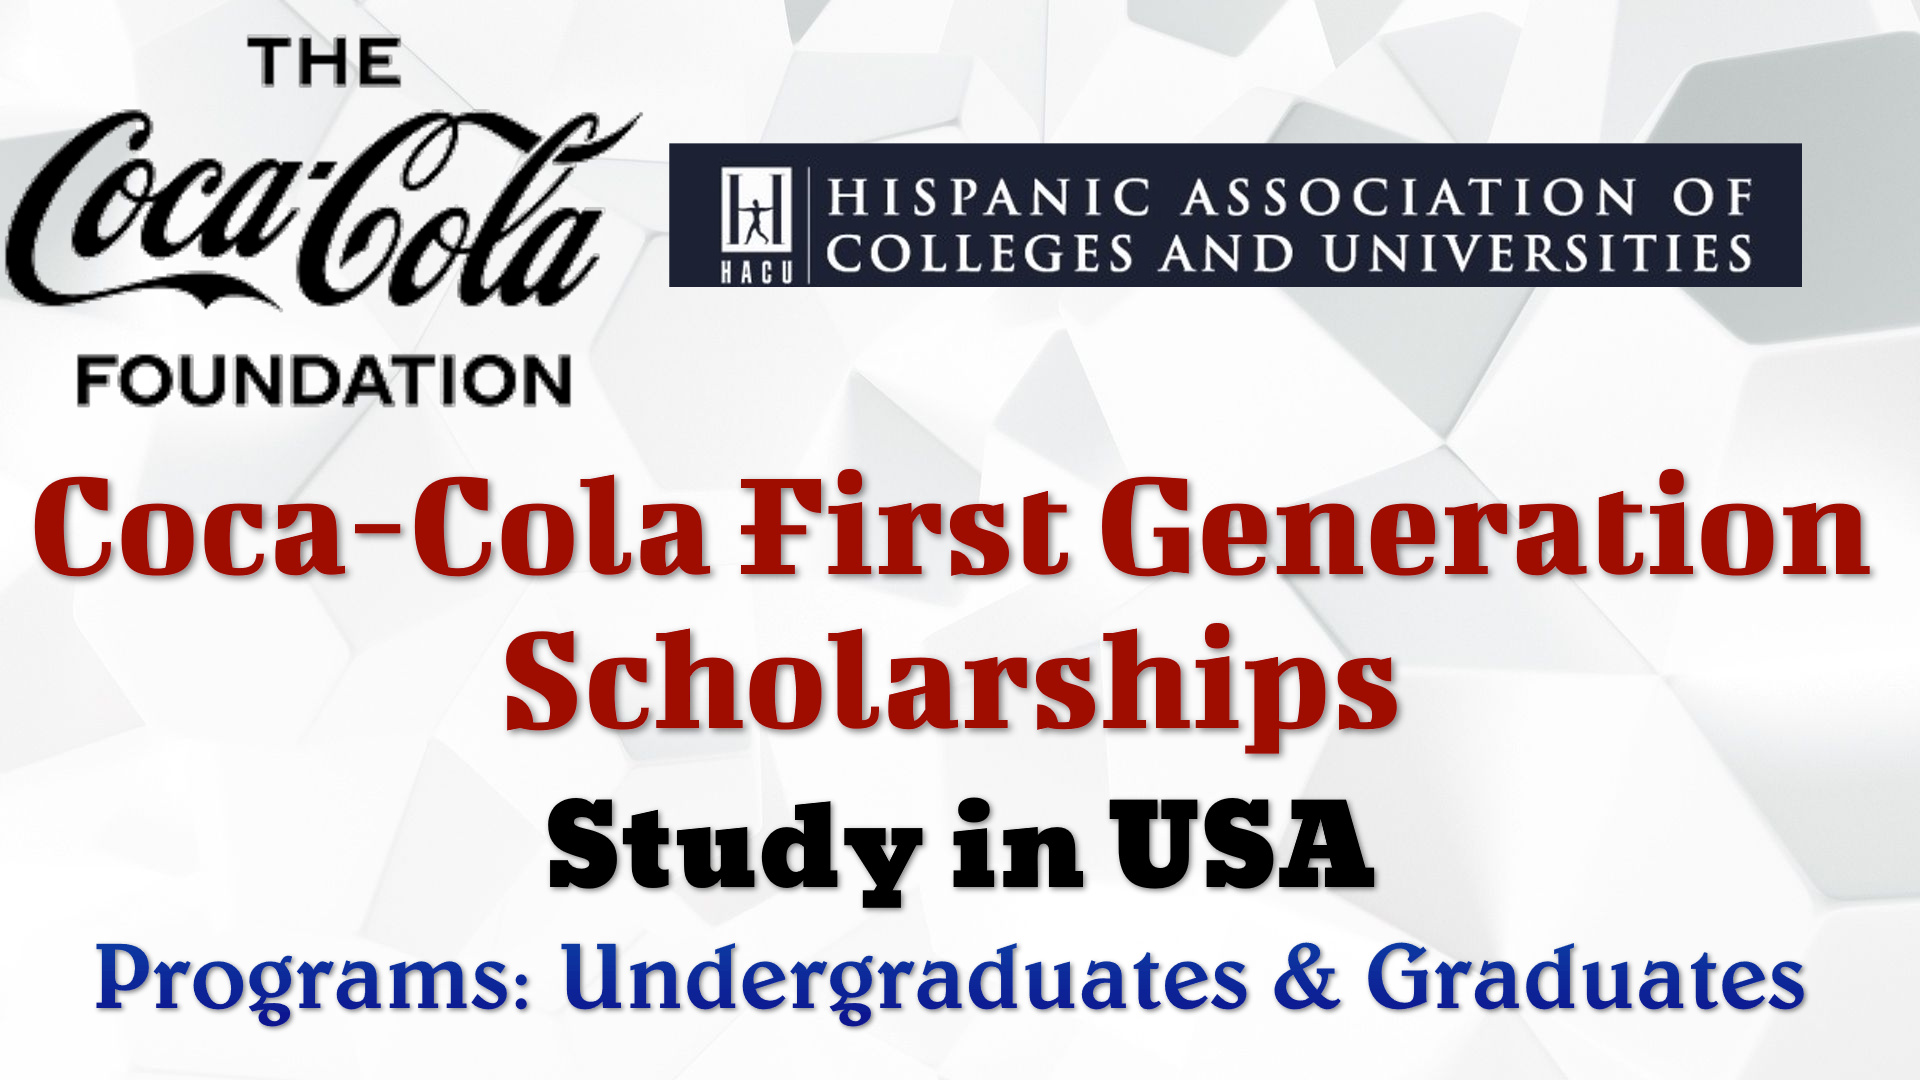 Coca-Cola First Generation Scholarships